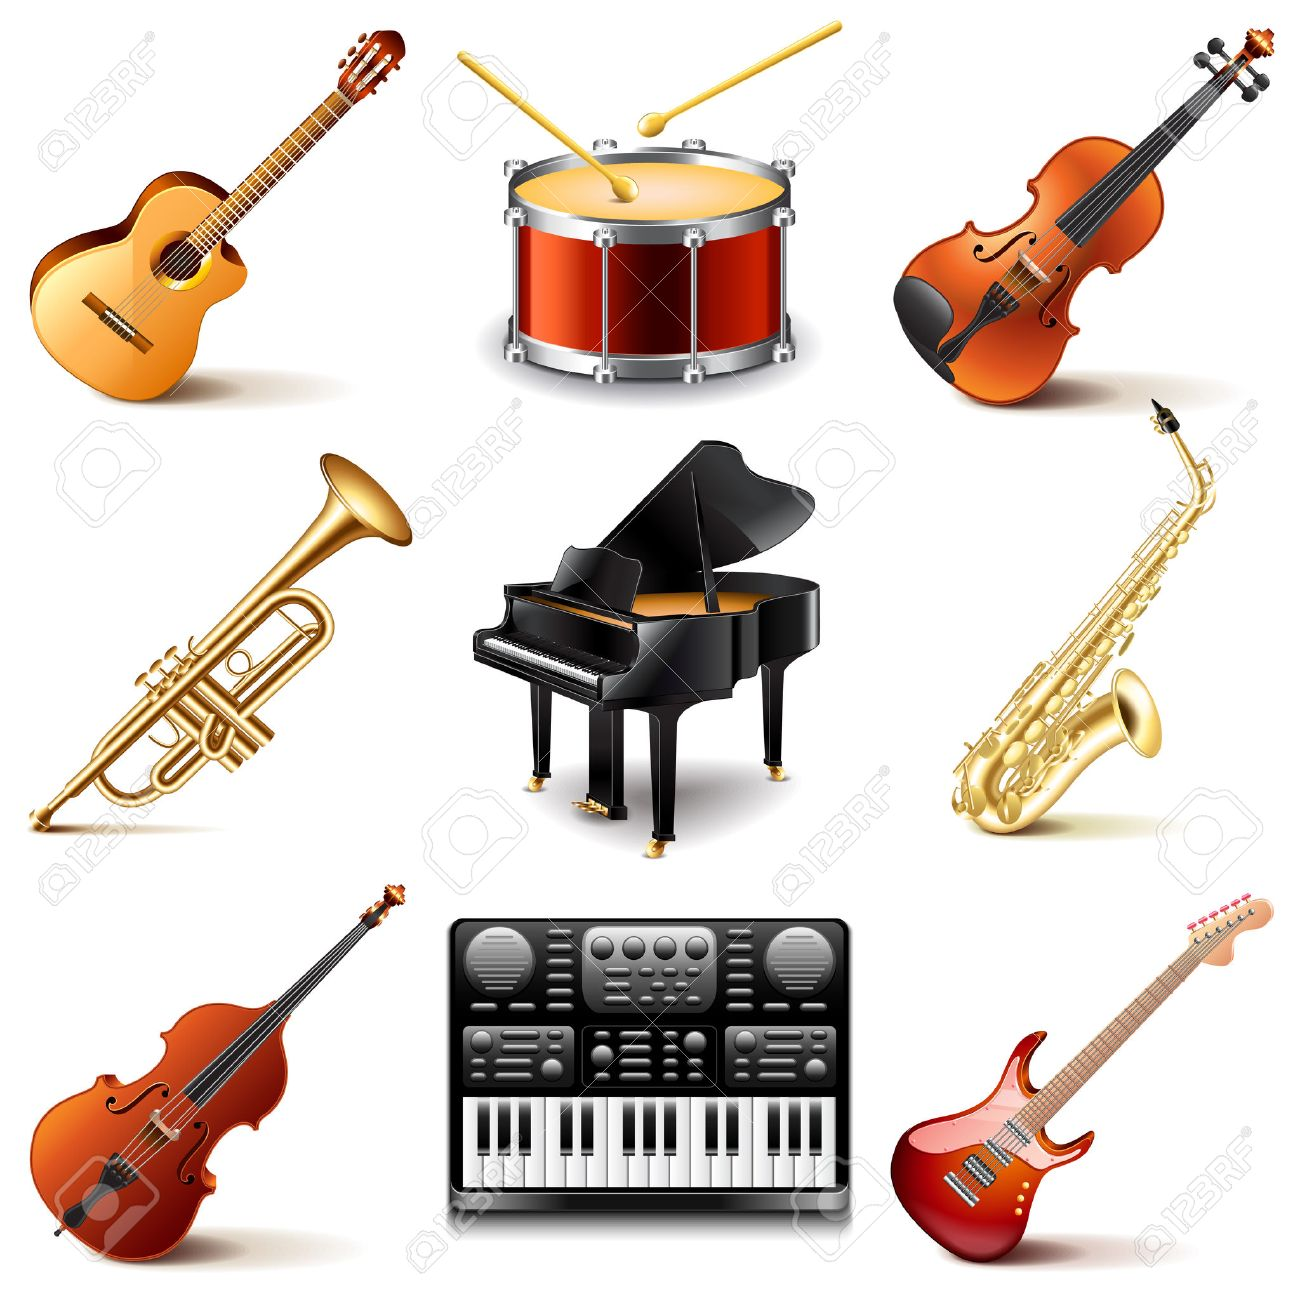 Musical instruments icons photo realistic vector set - 51987884